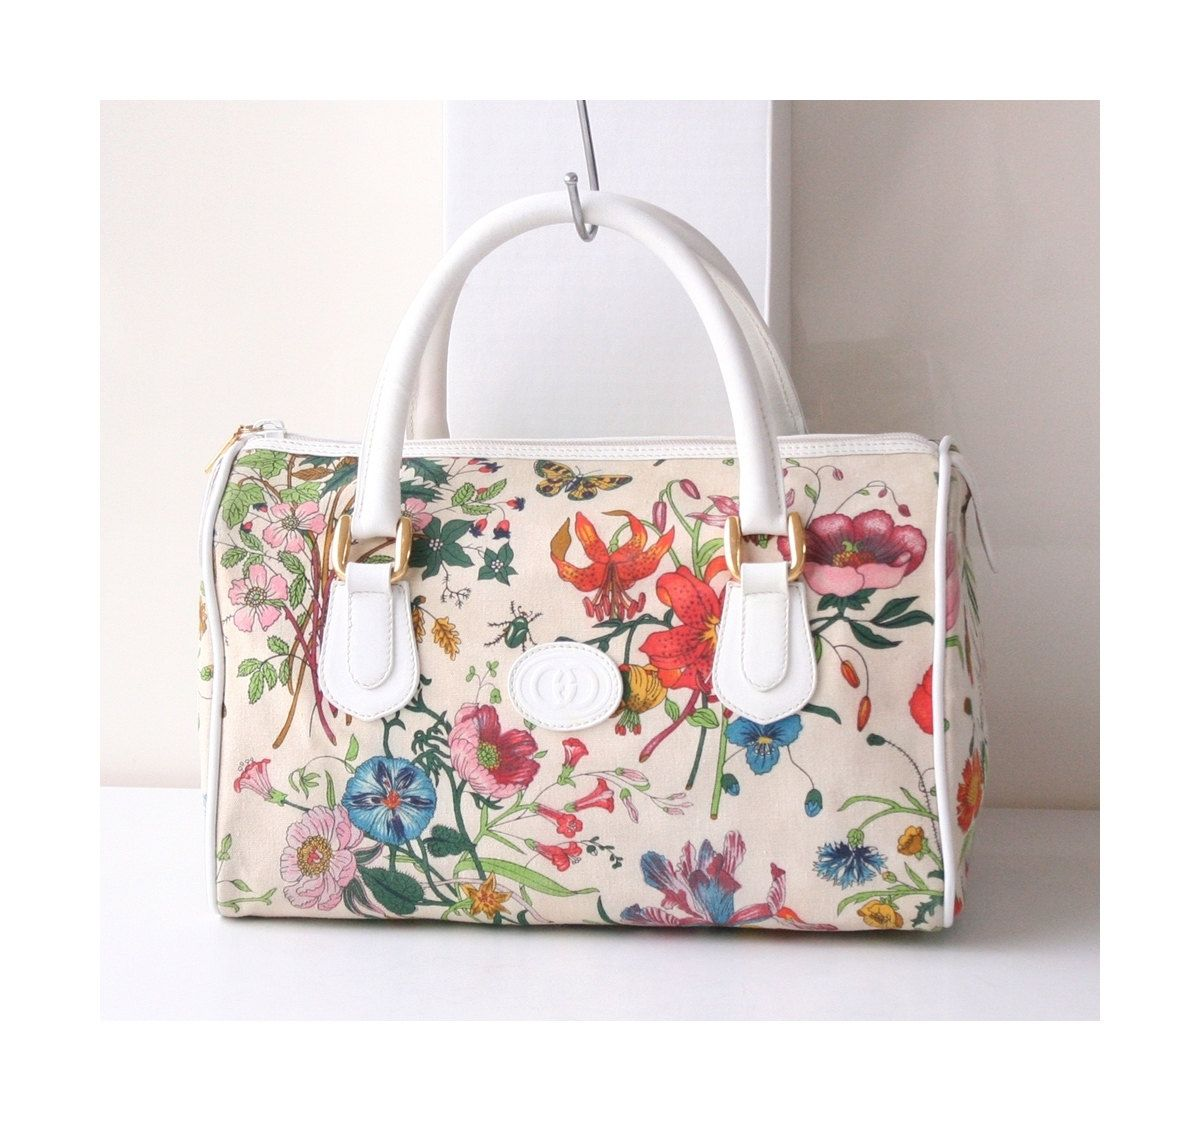 Gucci Bag Flower Canvas Boston Tote Vintage Authentic Handbag By